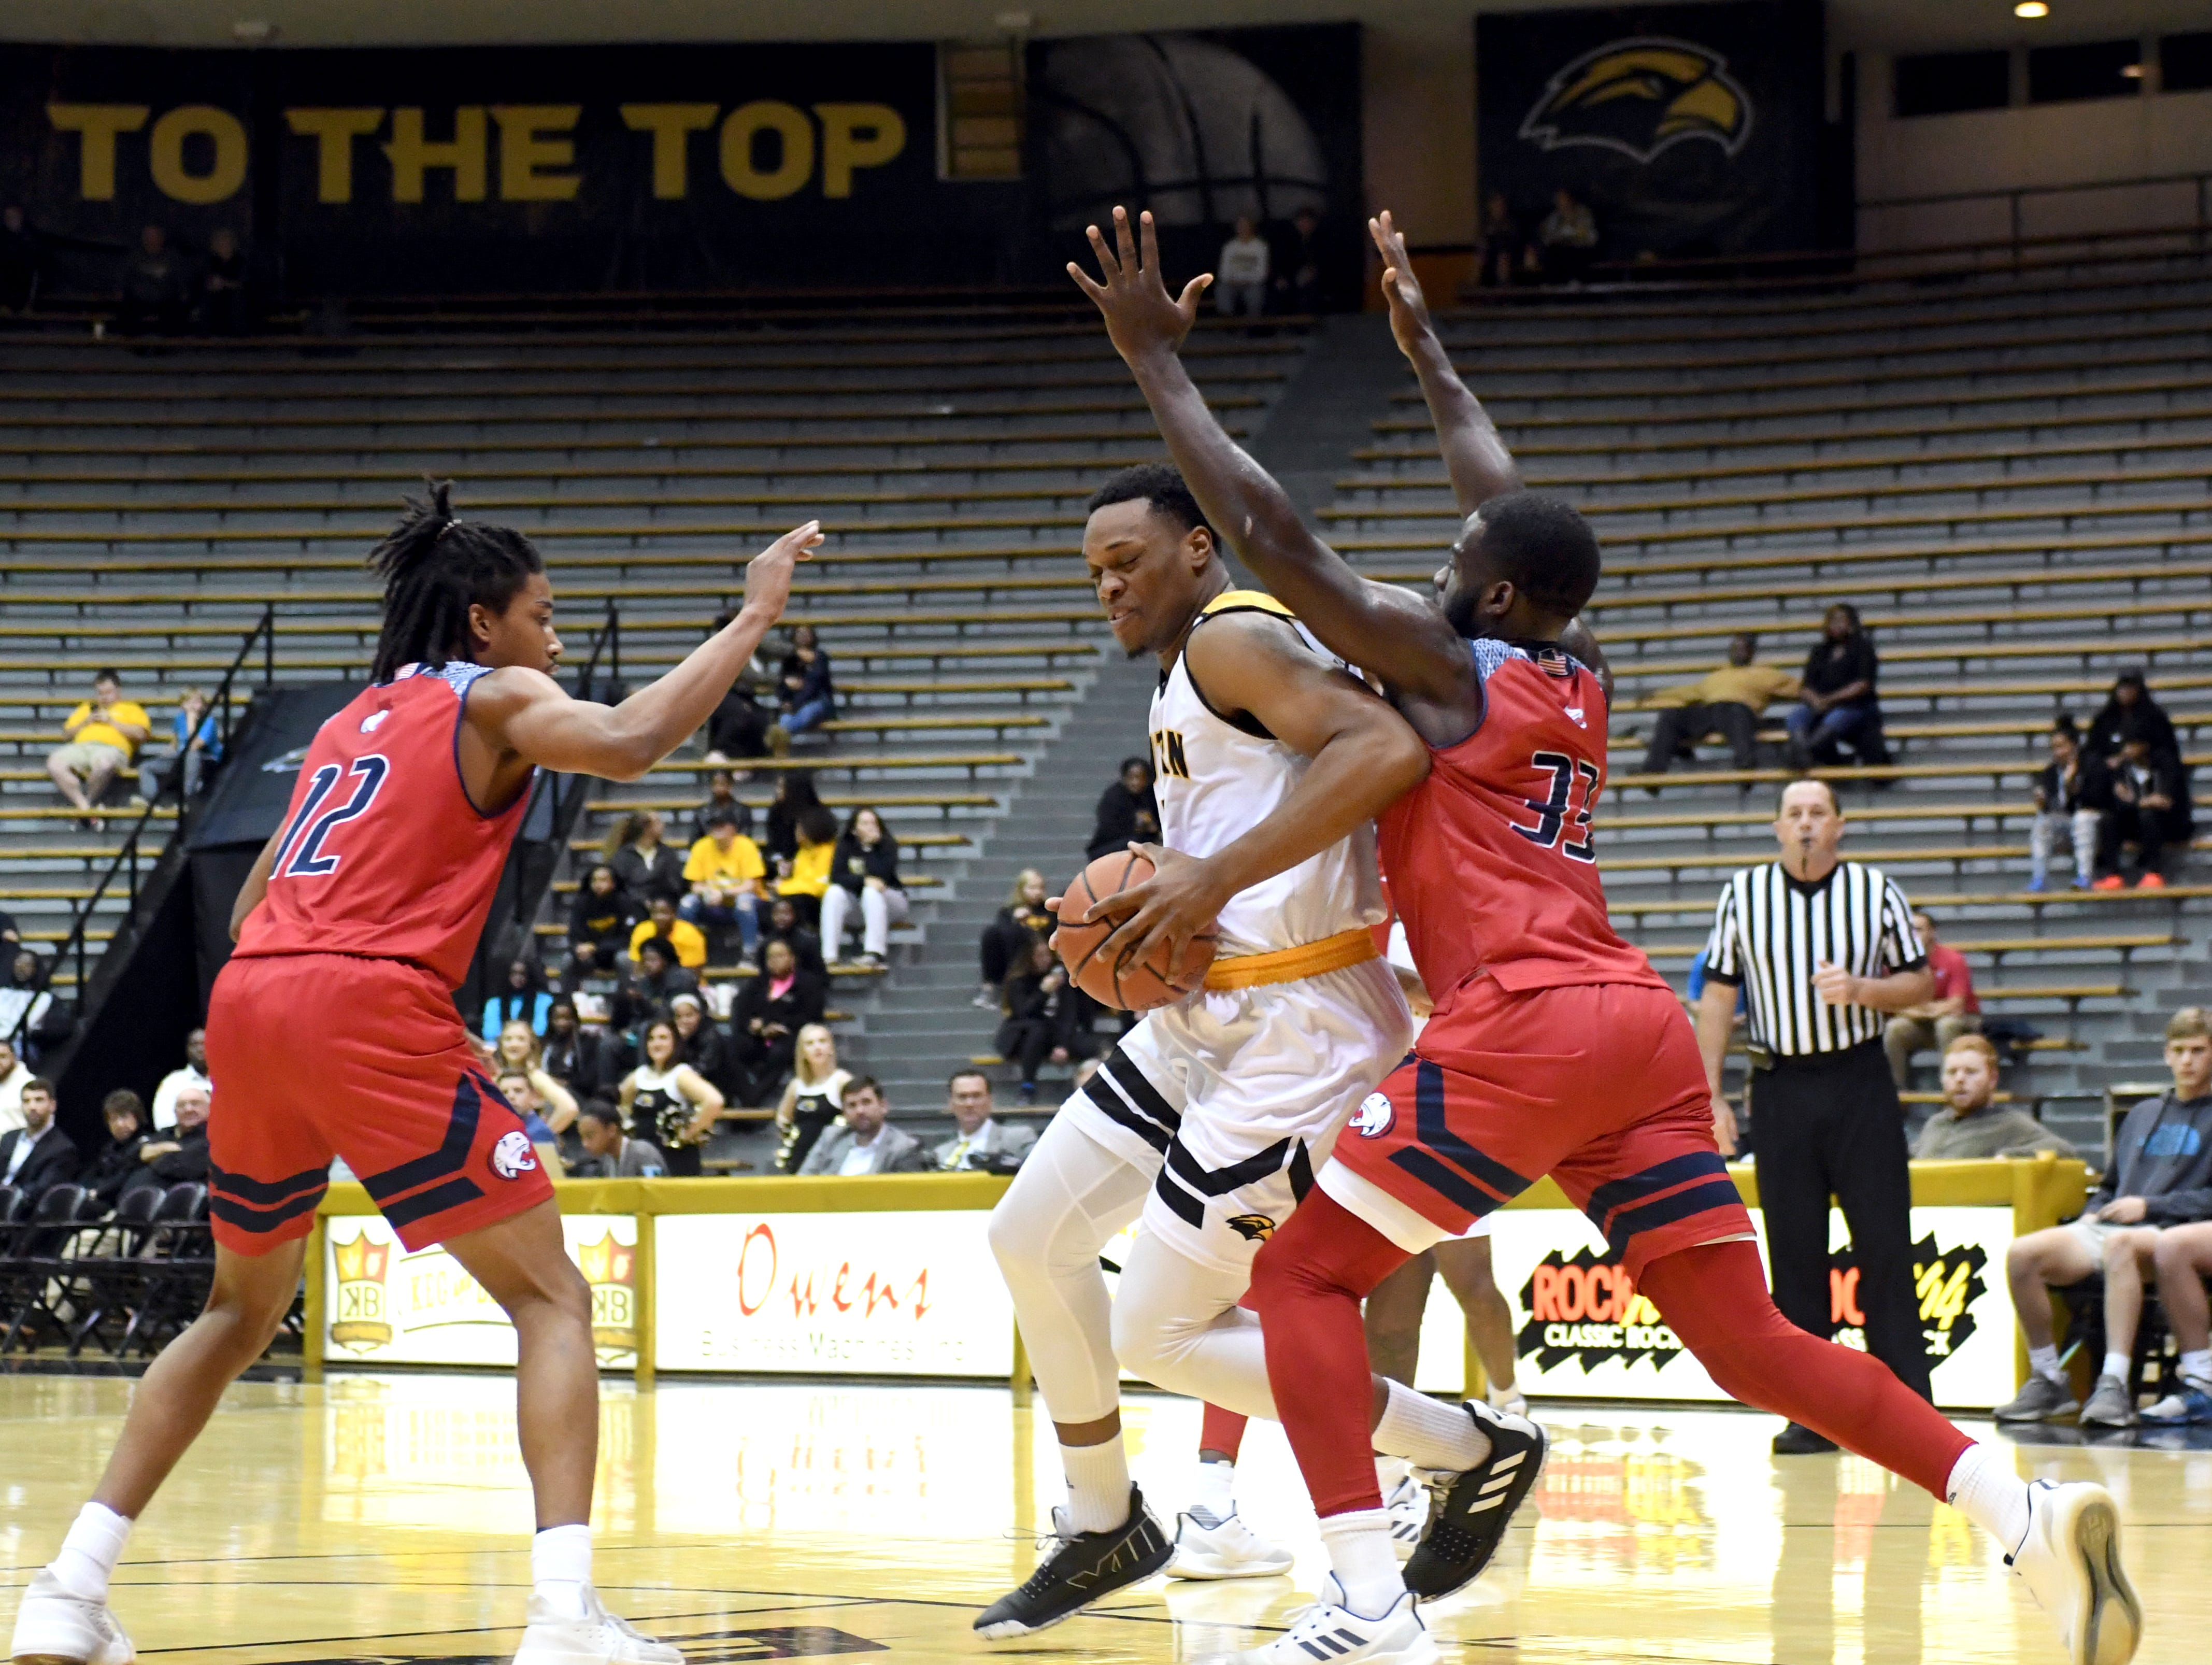 Southern Miss forward Boban Jacdonmi fights off a defender in a game against South Alabama in Reed Green Coliseum on Wednesday, November 28, 2018.